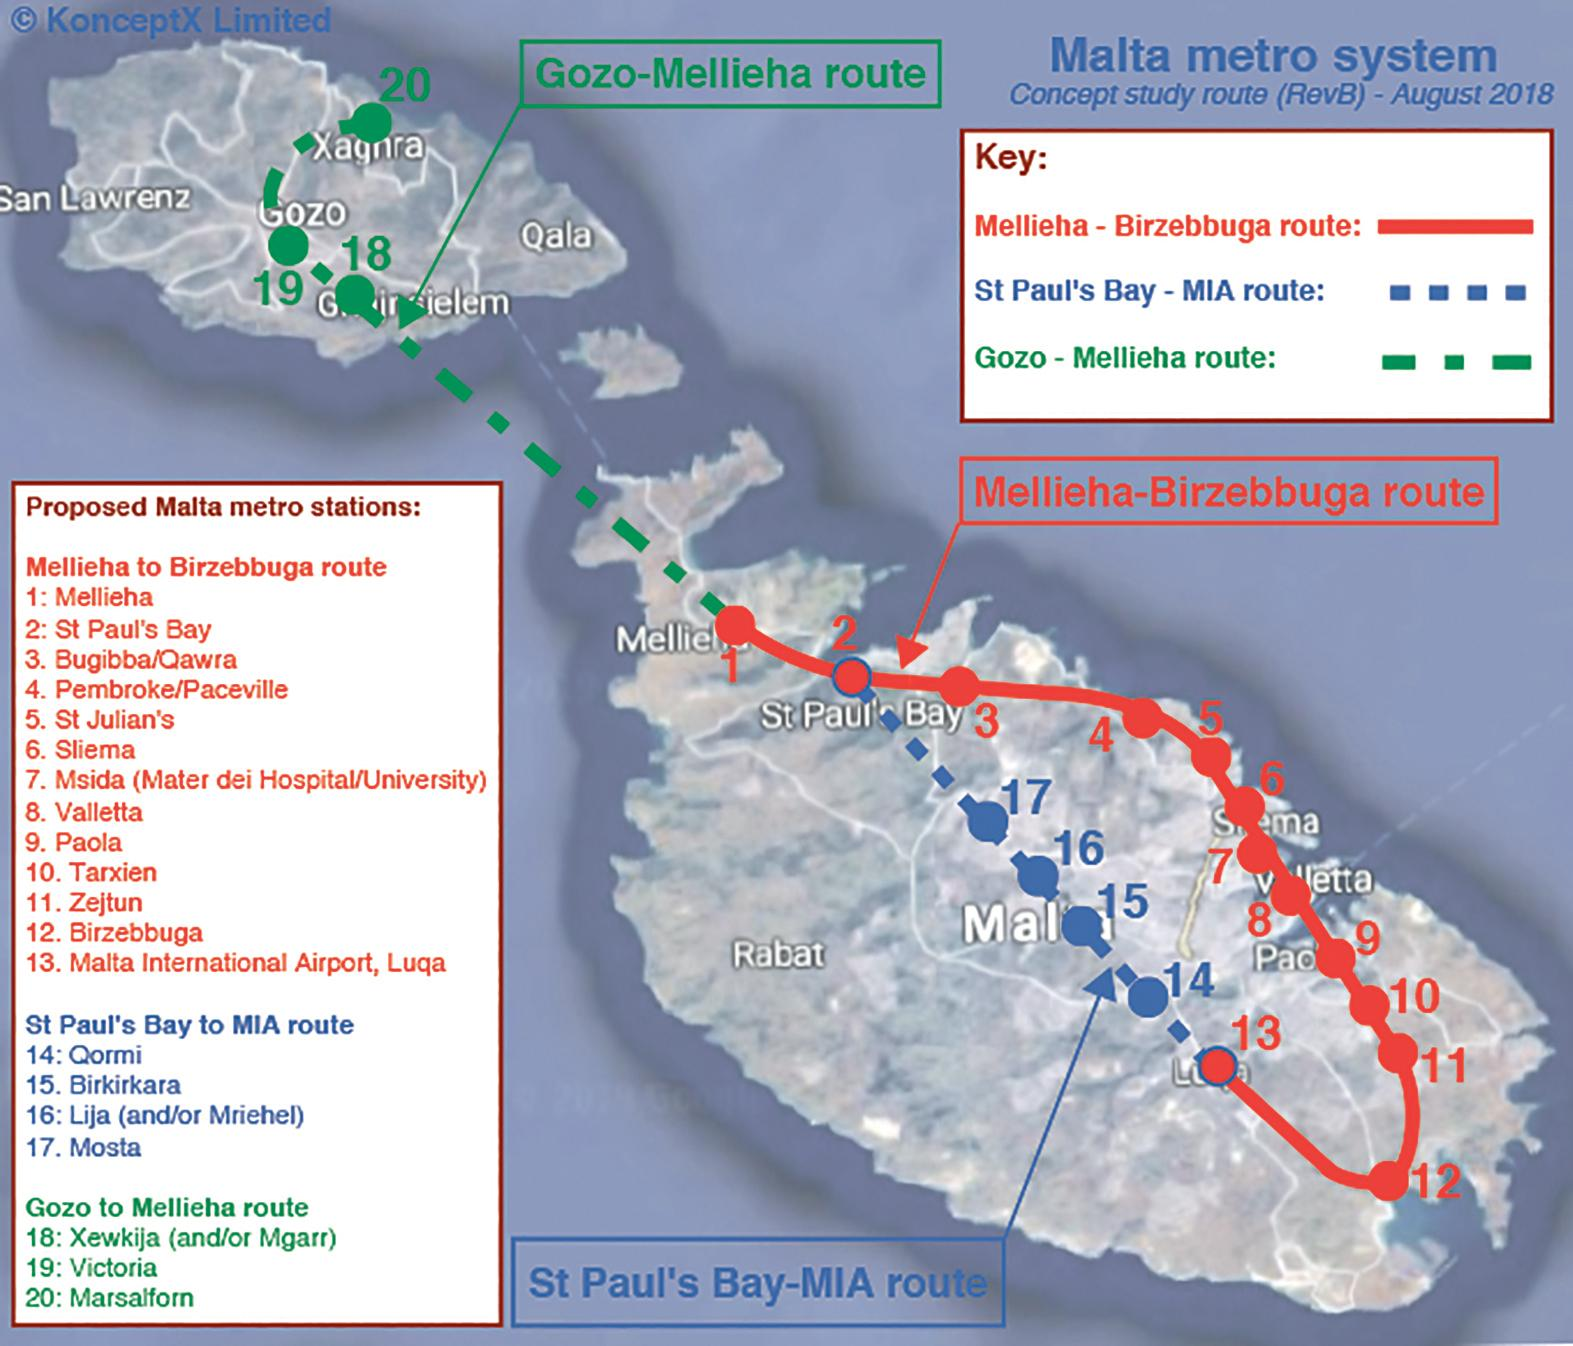 The first phase, linking Mellieħa to MIA via Birżebbuġa, would be 25km long; the second phase, linking MIA to St Paul's Bay, would be 10km long; and the third phase, linking Mellieħa to Gozo, would be 15km long.